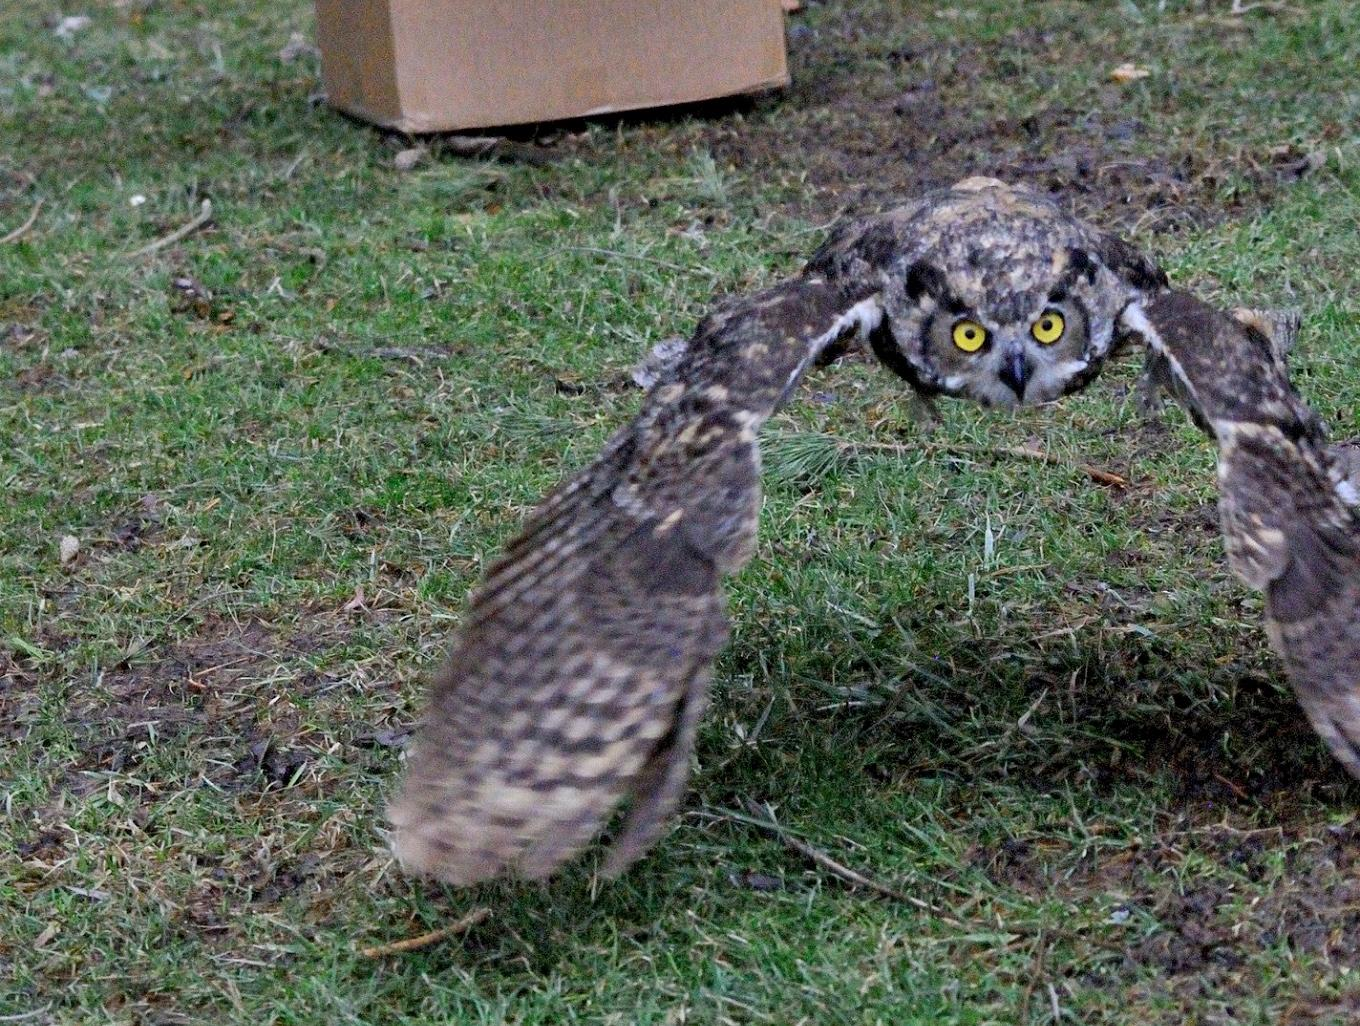 A recovered owl takes flight at Rice Creek Field Station